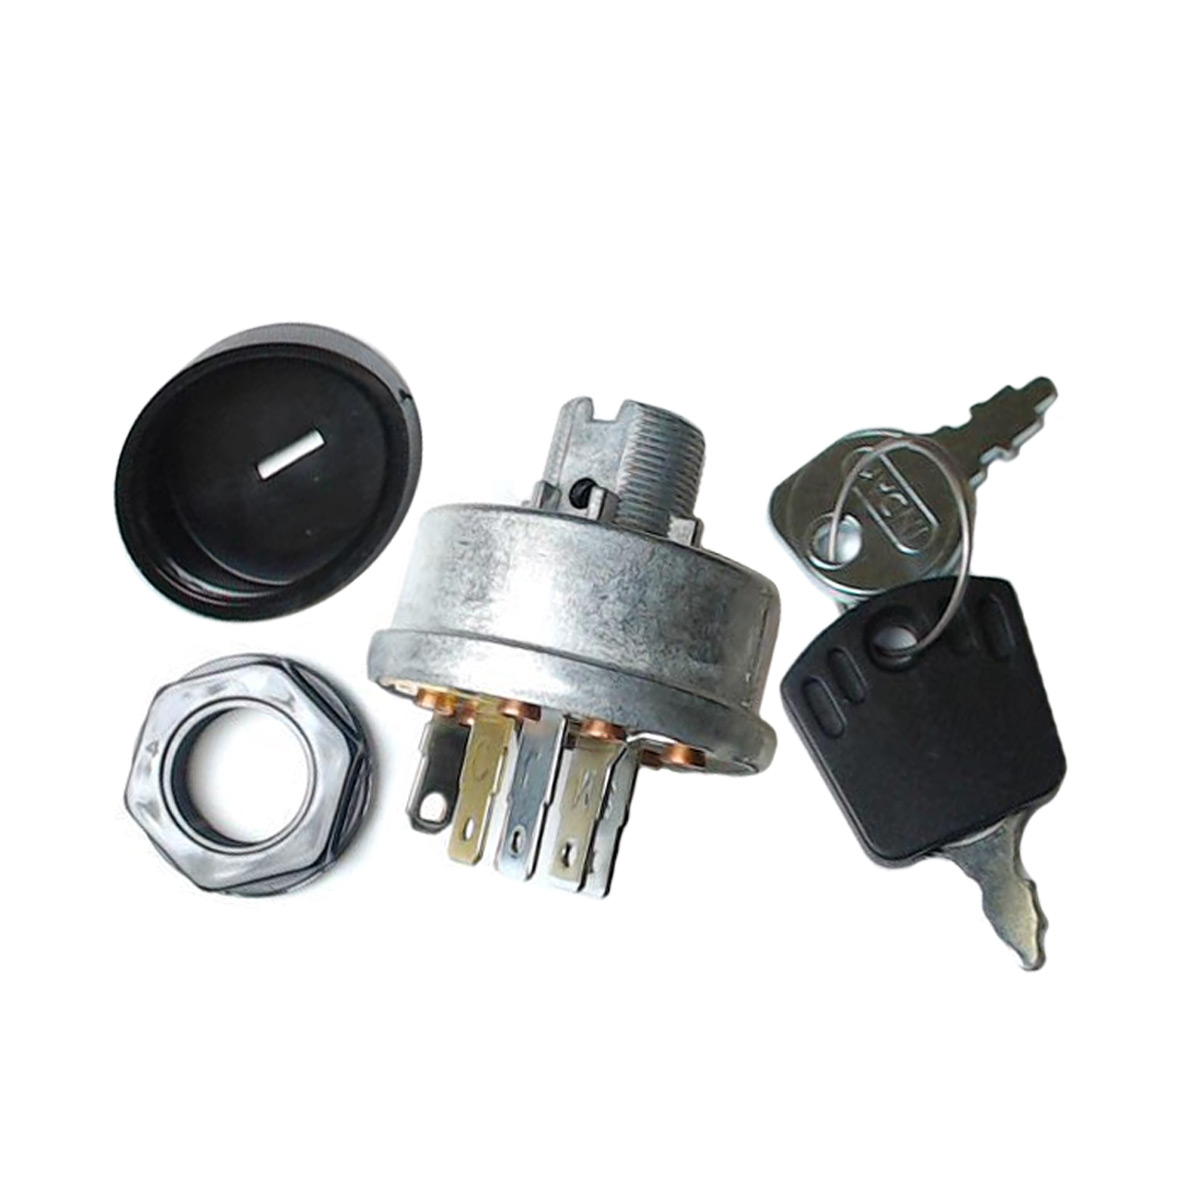 John Deere Ignition Switch Diagram Review Ebooks